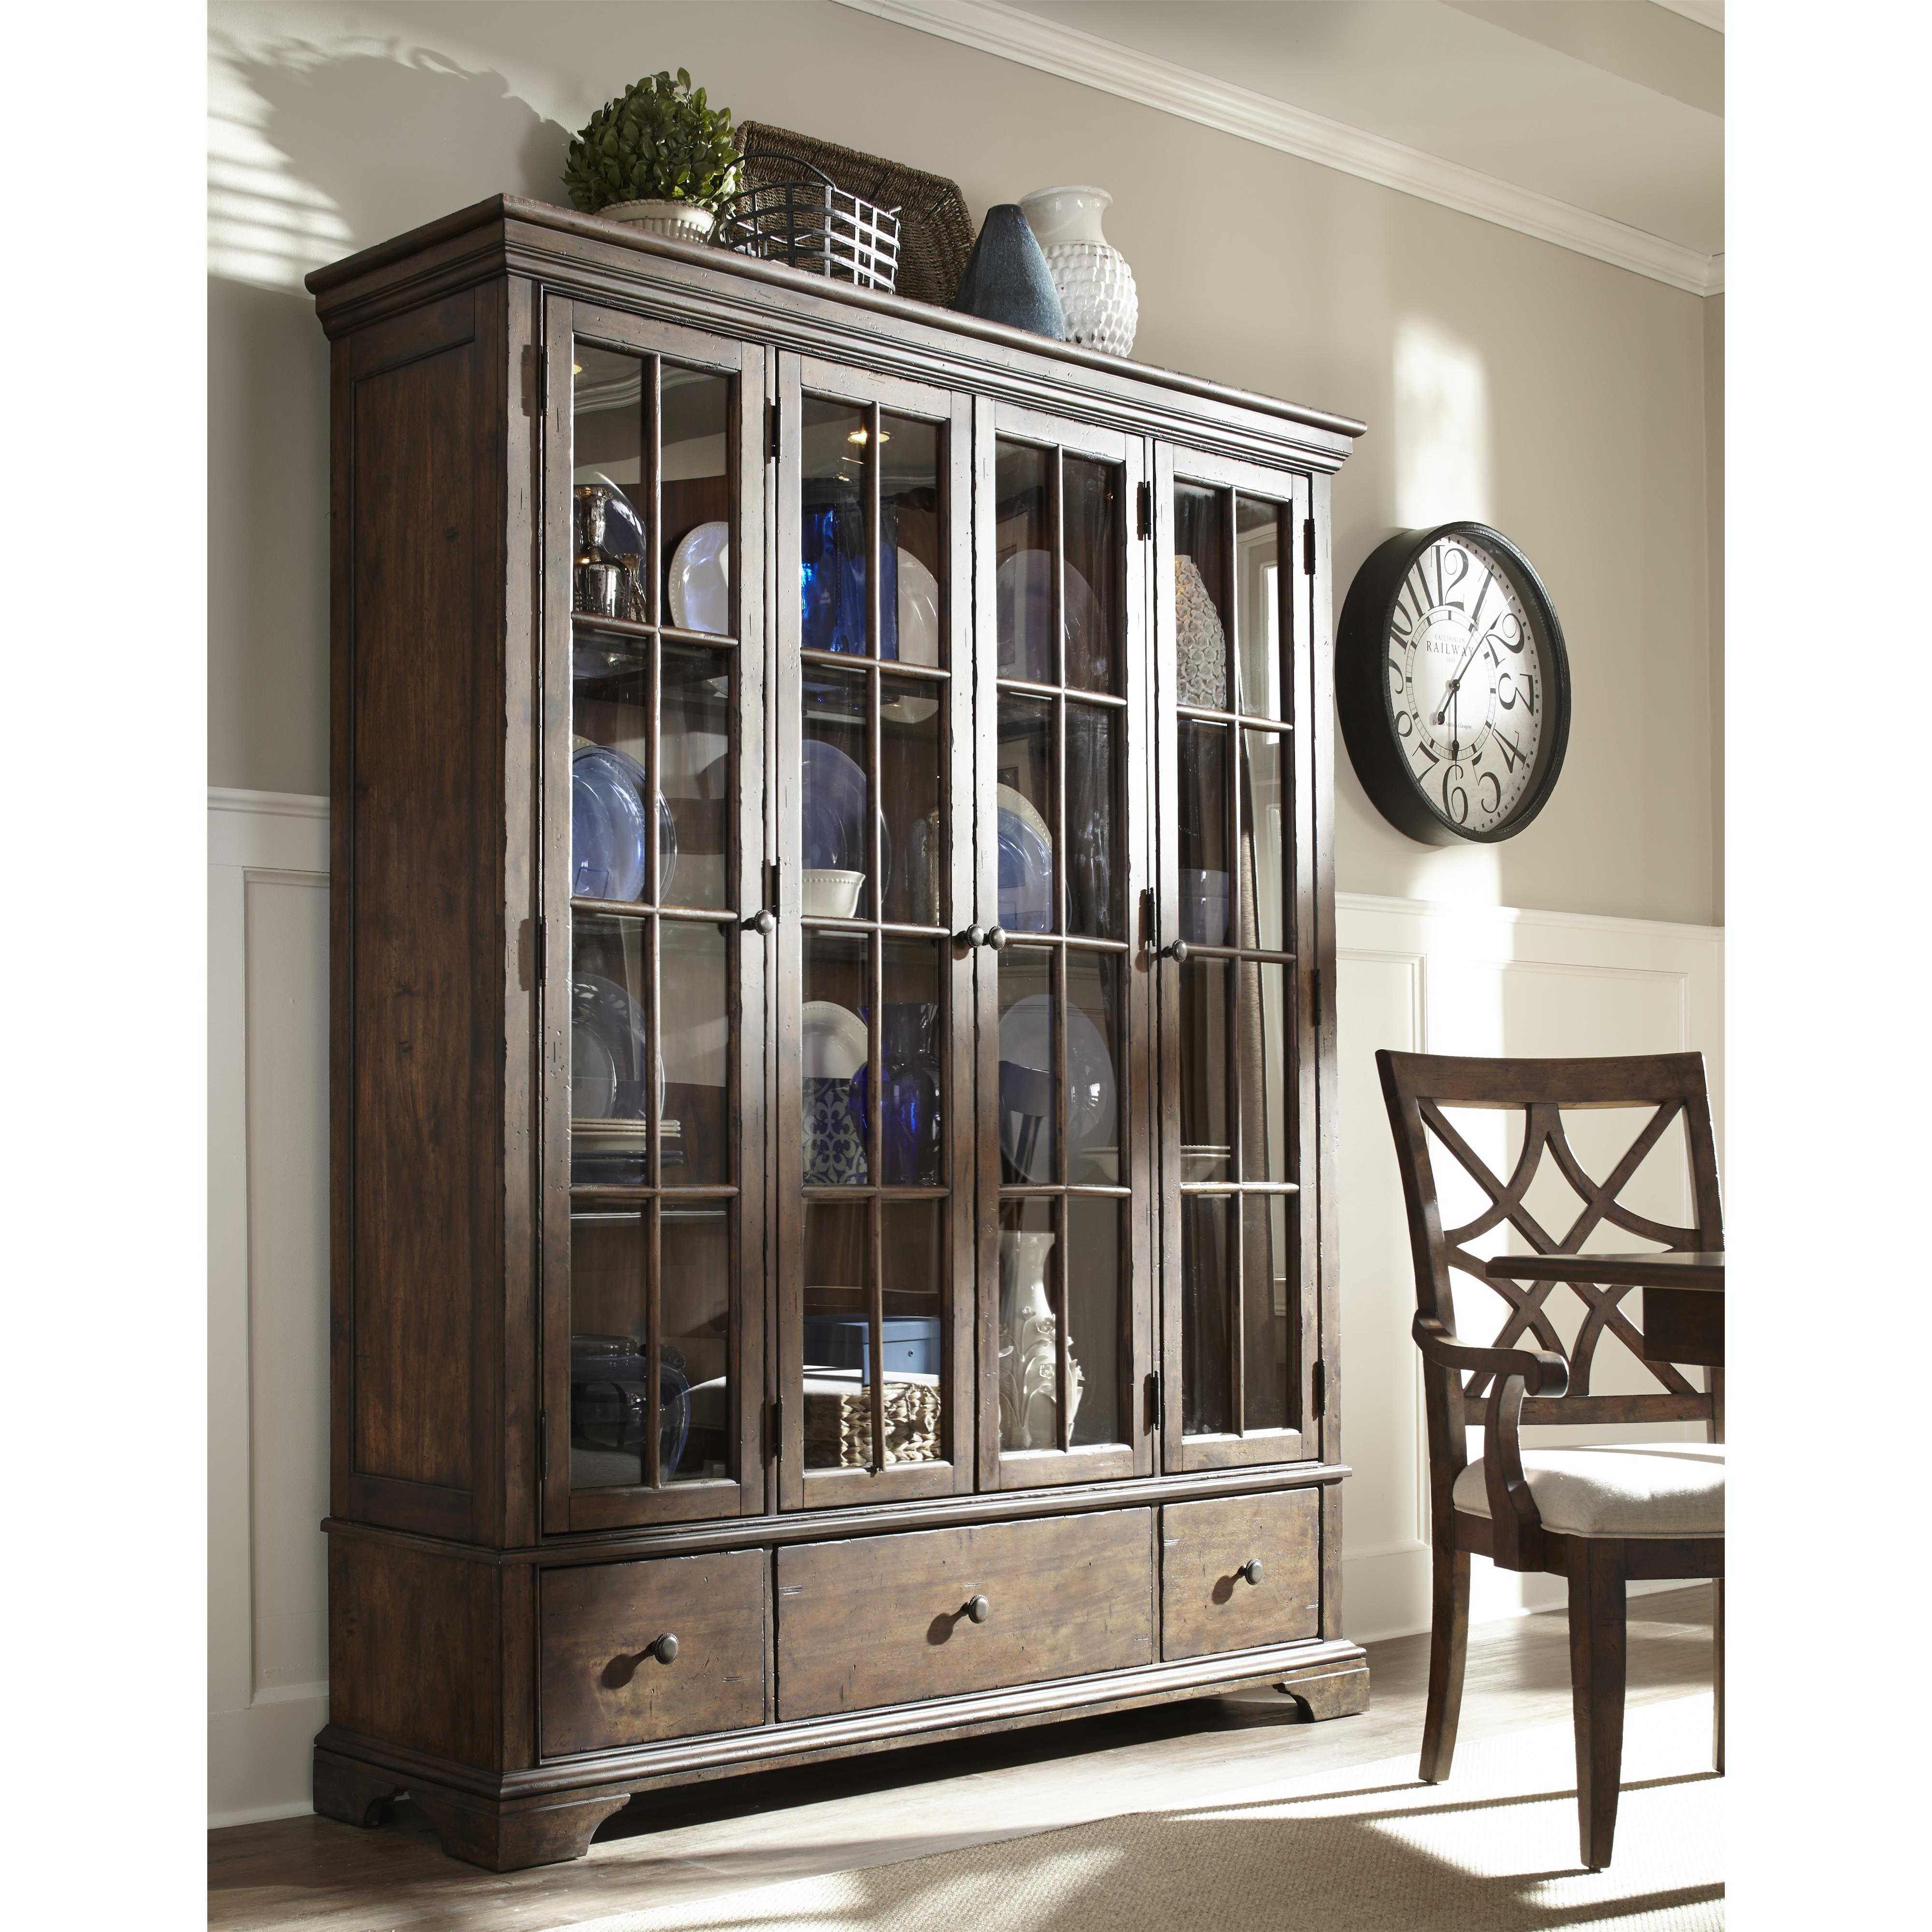 Klaussner Trisha Yearwood Home Monticello Curio